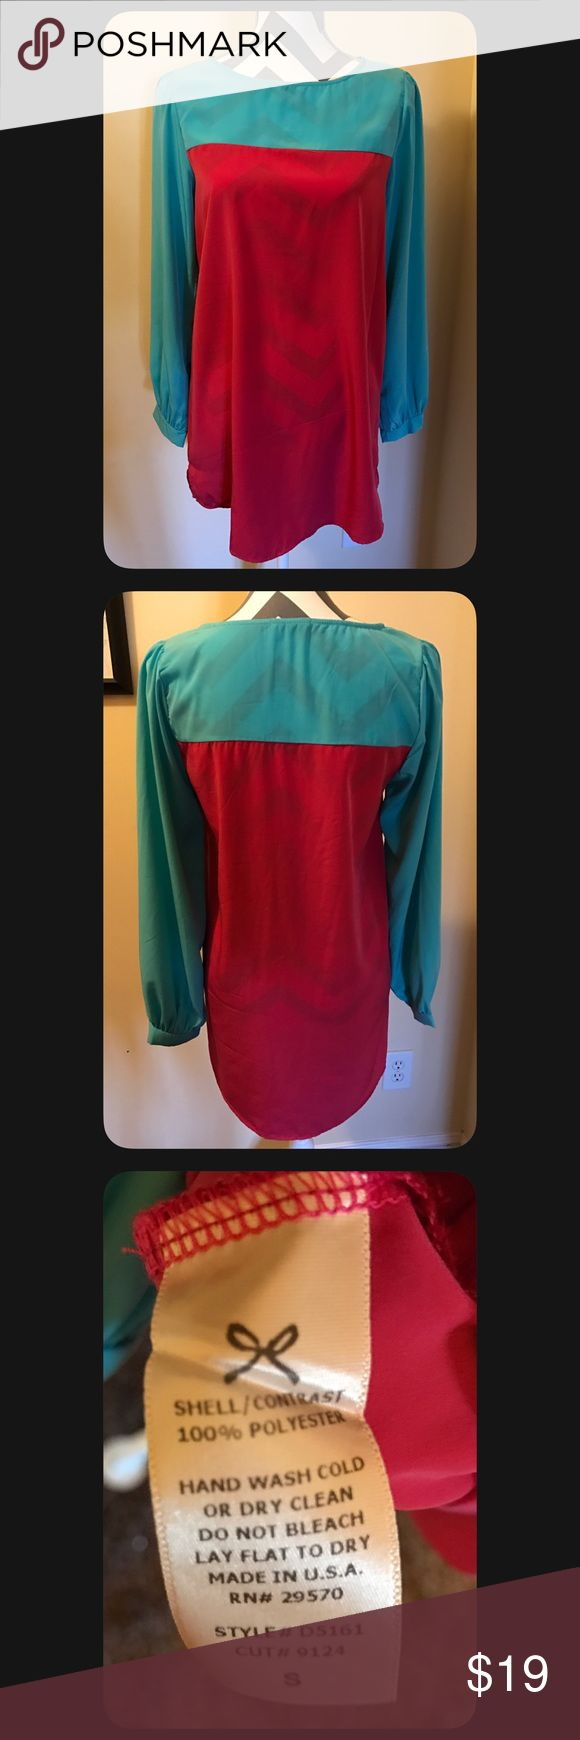 Size Small long sleeve tunic dress NWOT NWOT - long sleeve polyester tunic dress - size Small - teal & pink in color - NO TRADES Dresses